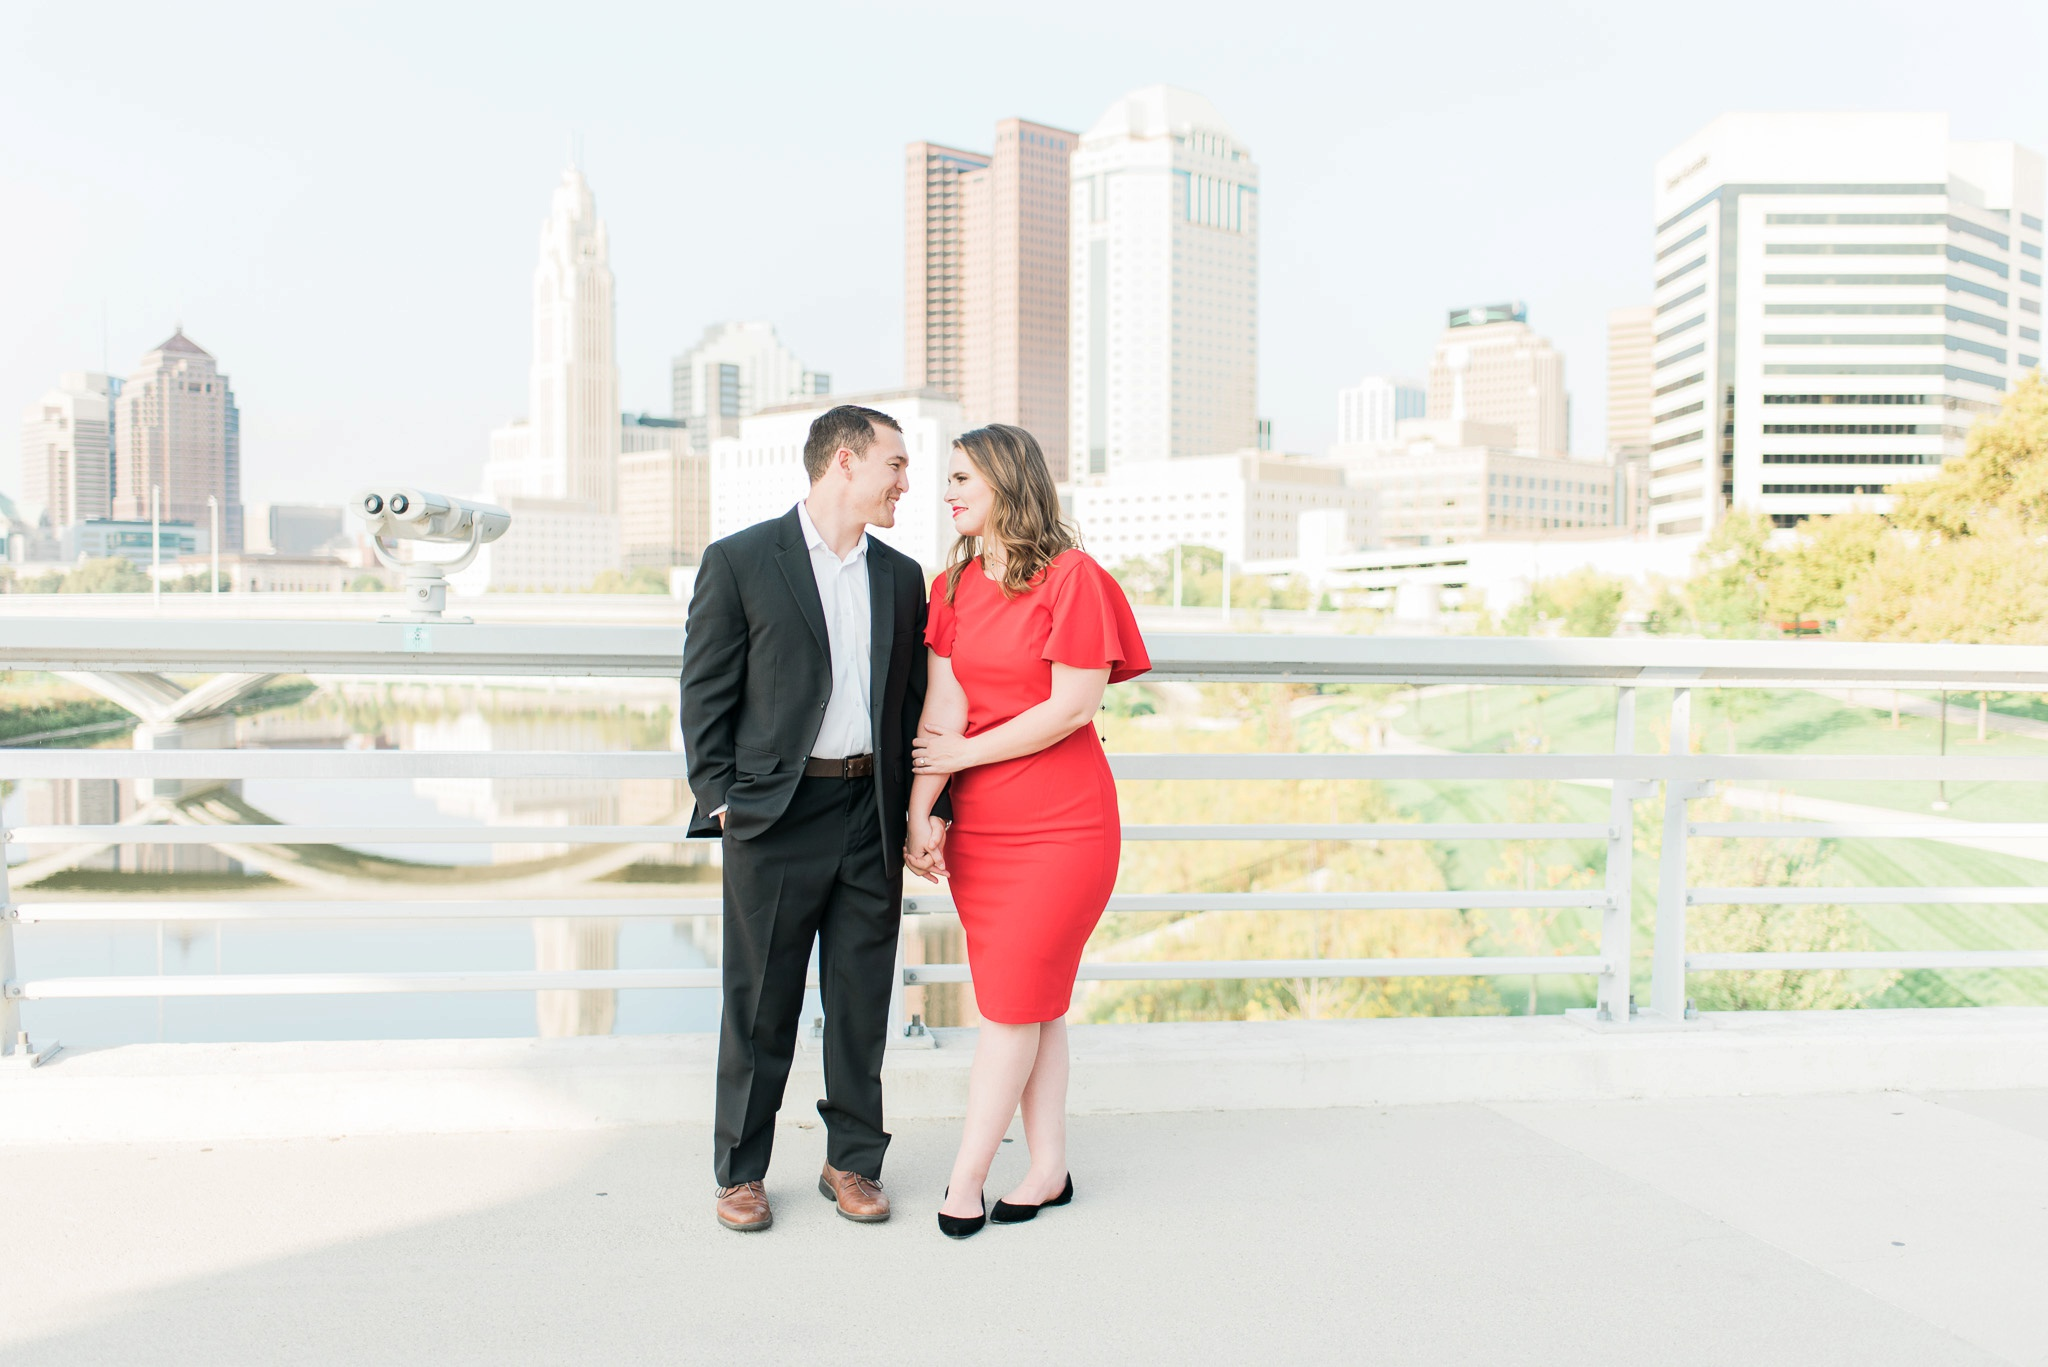 downtown-columbus-german-village-engagement-session-54.jpg